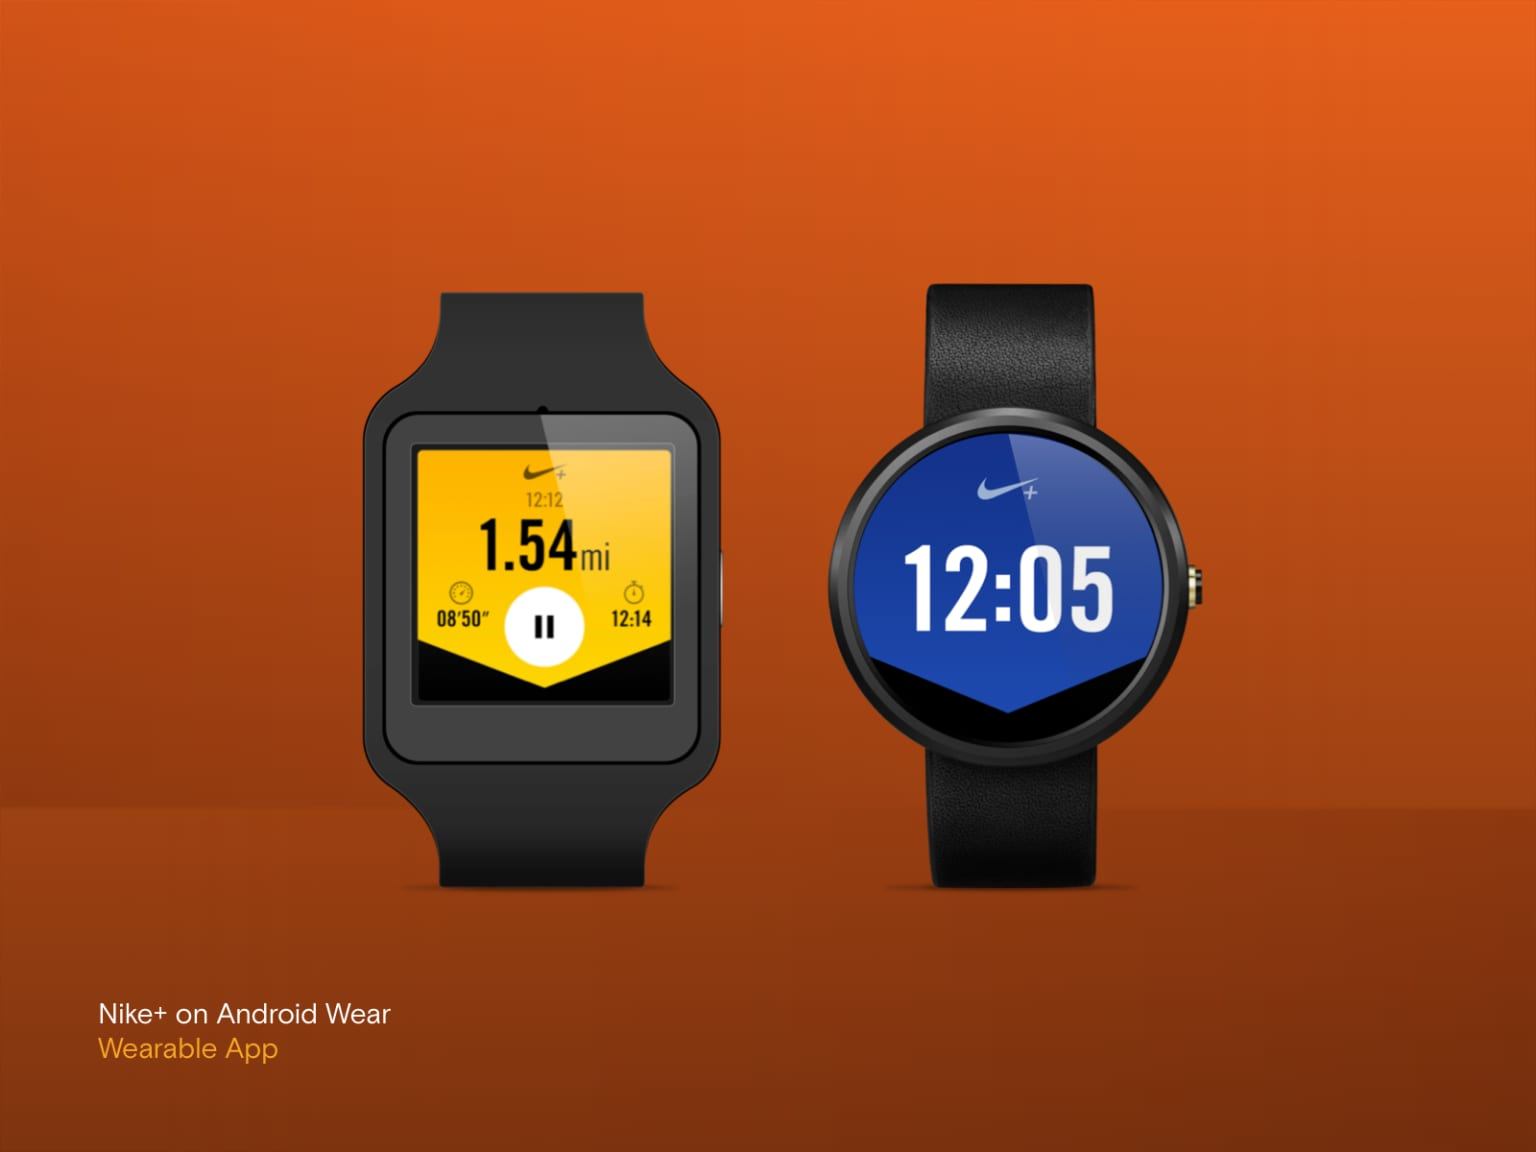 Nike+ on Android Wear